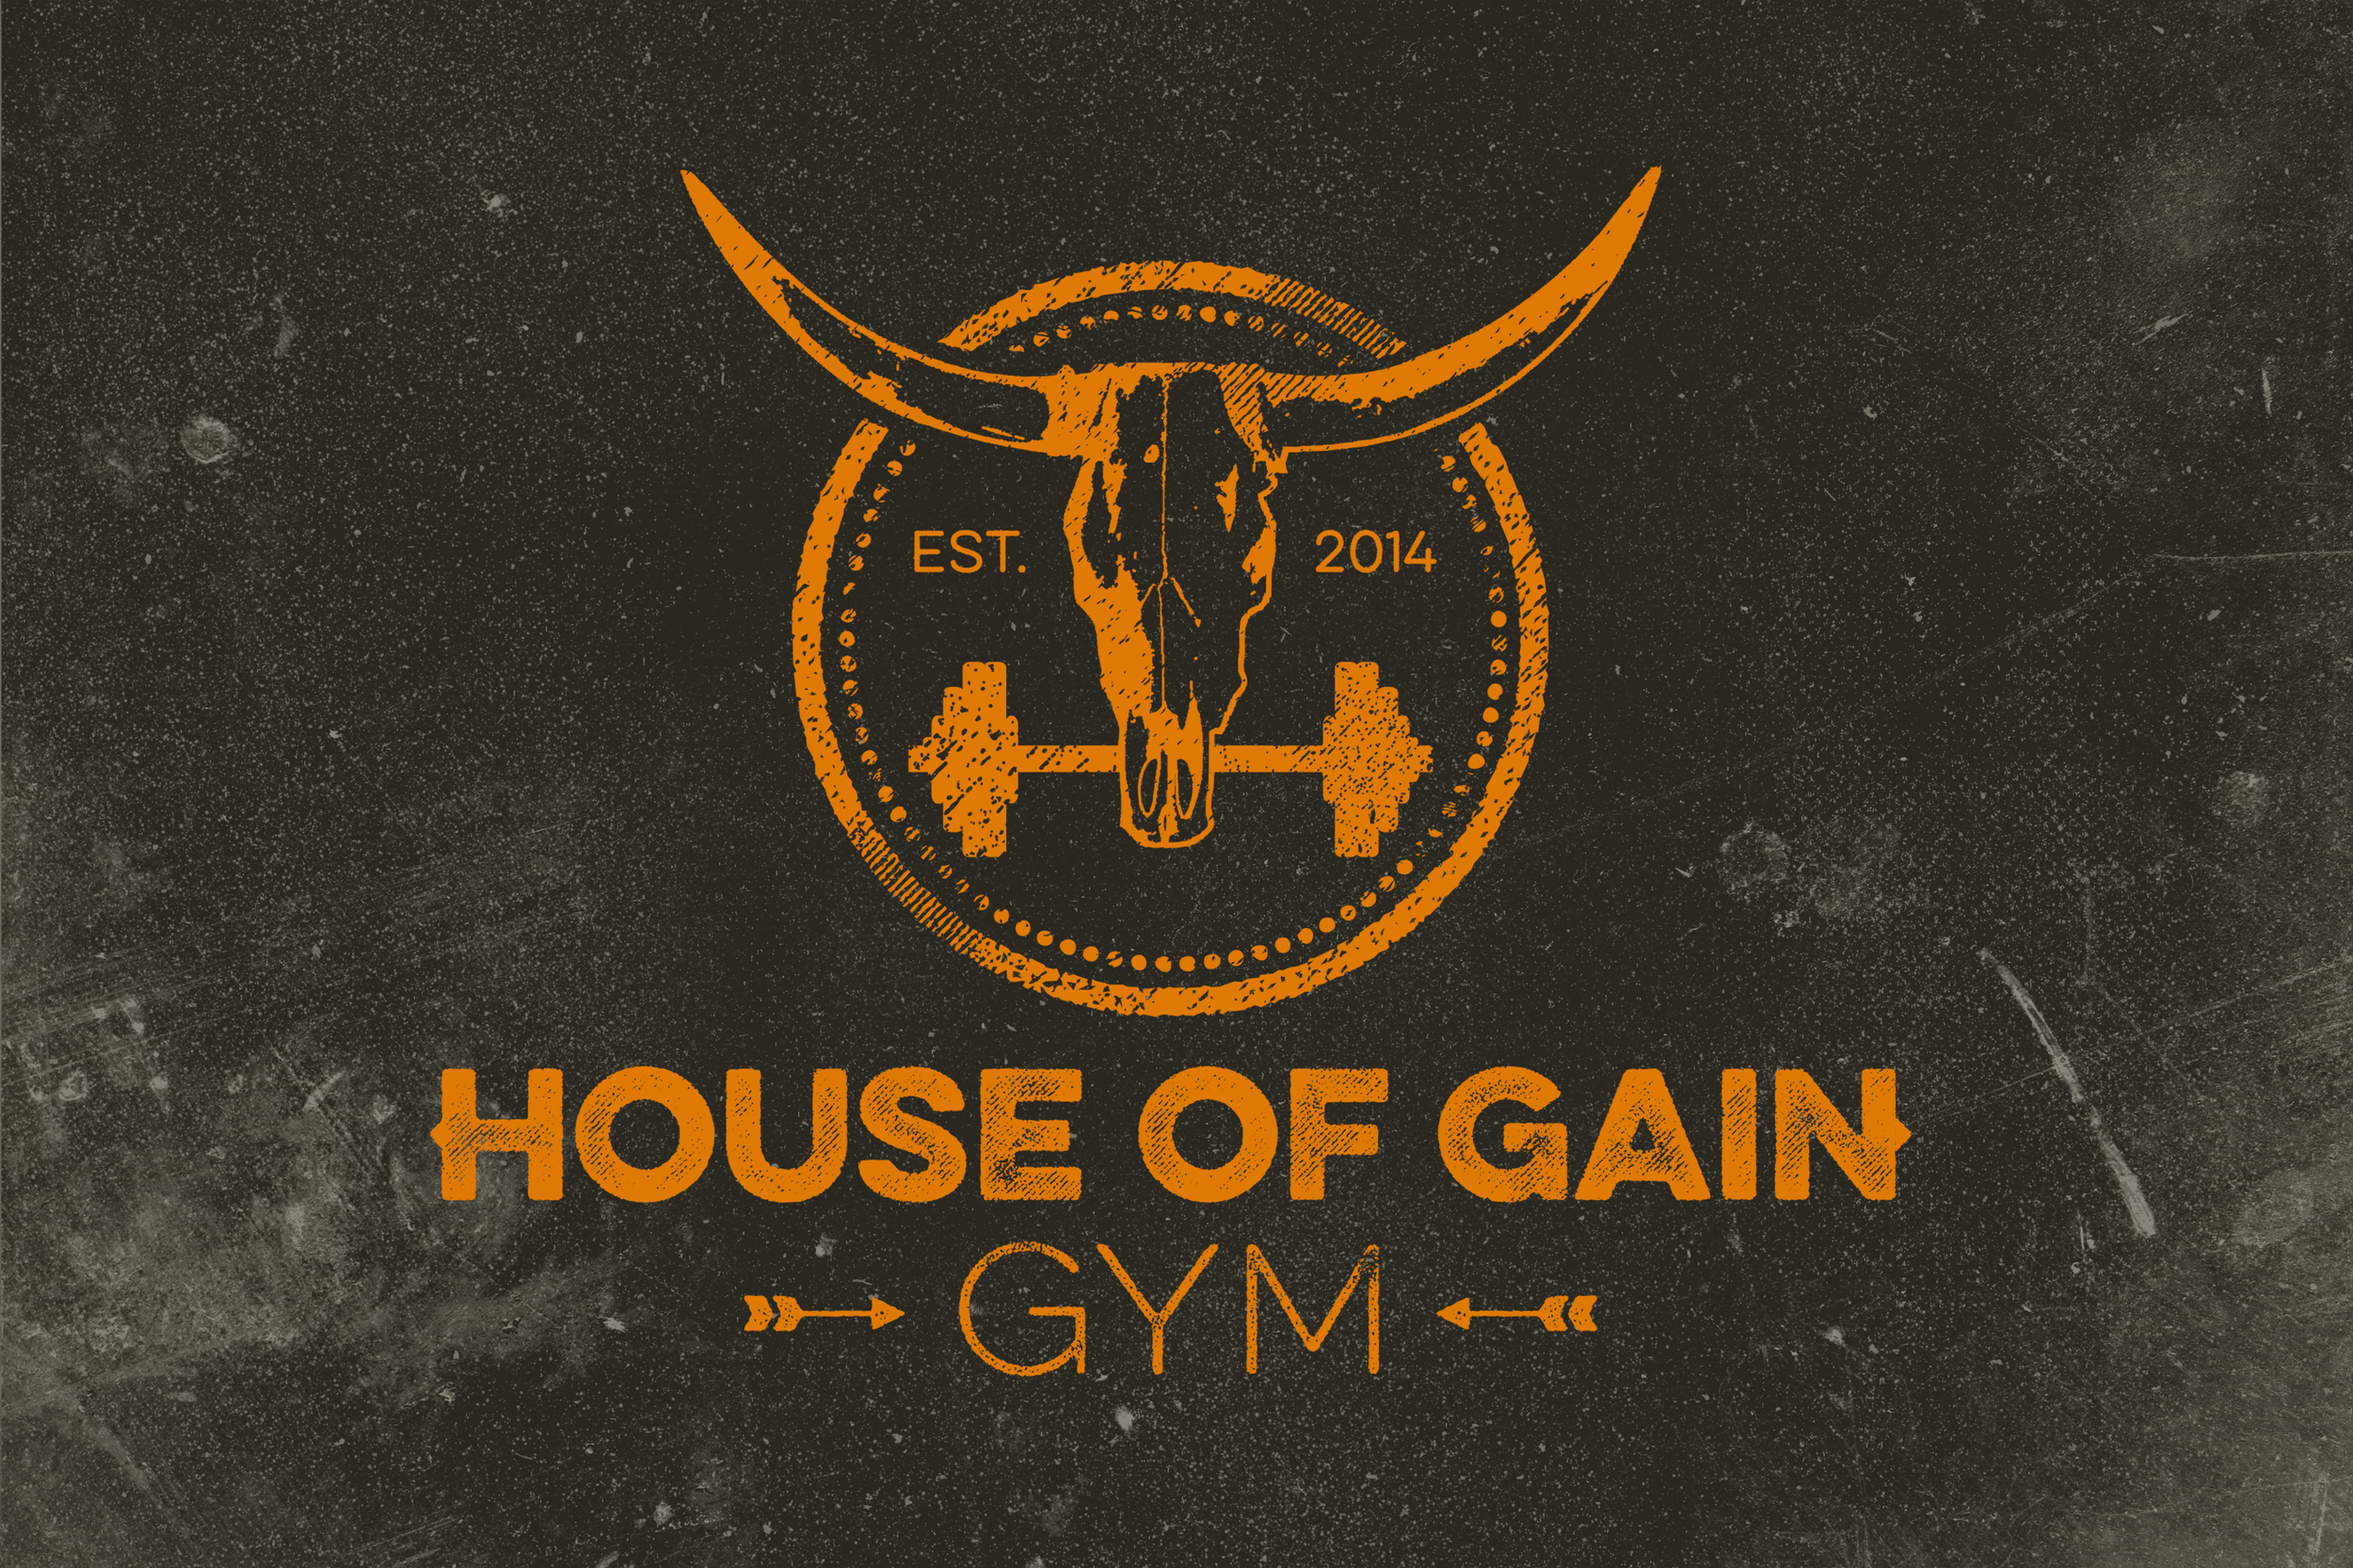 House of Gain Logo Orange on Dark Background.jpg